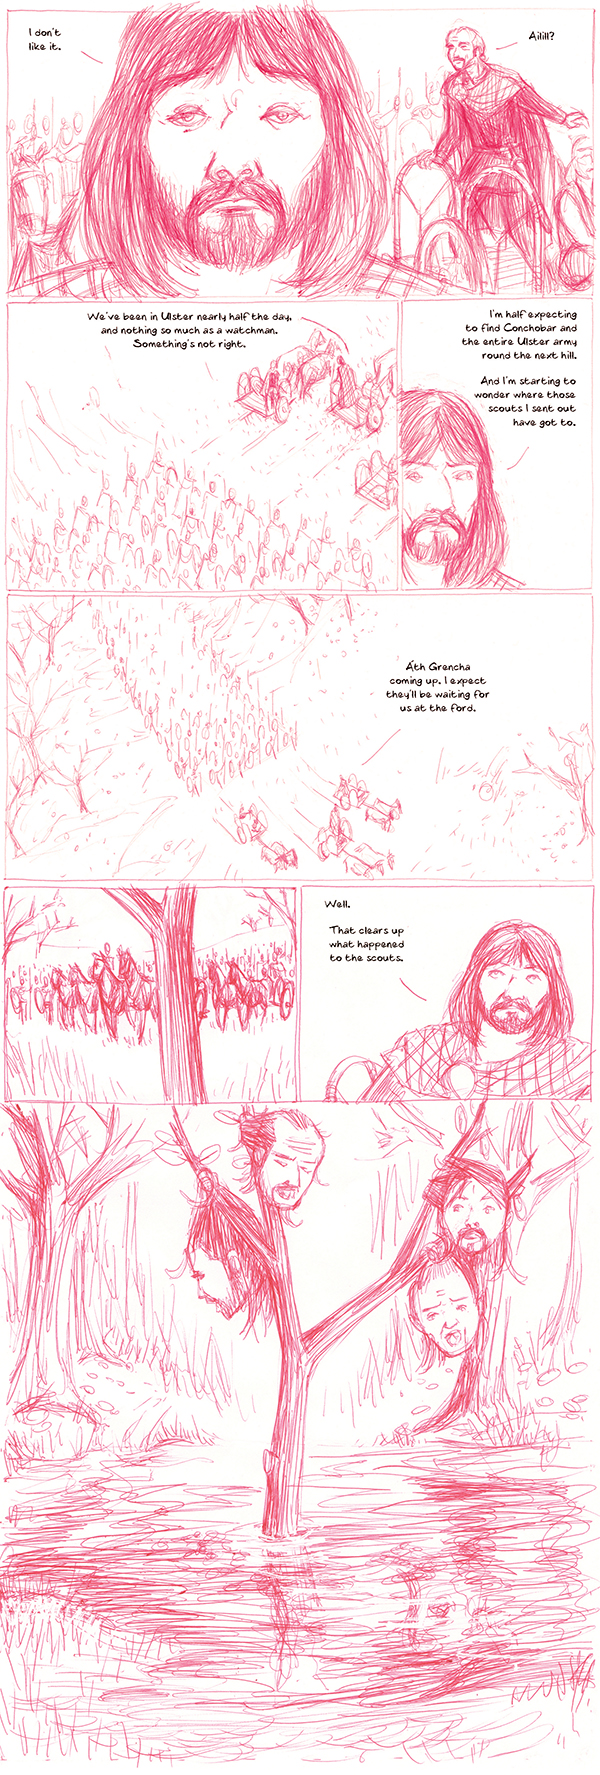 The Cattle Raid of Cooley issue 2 preview